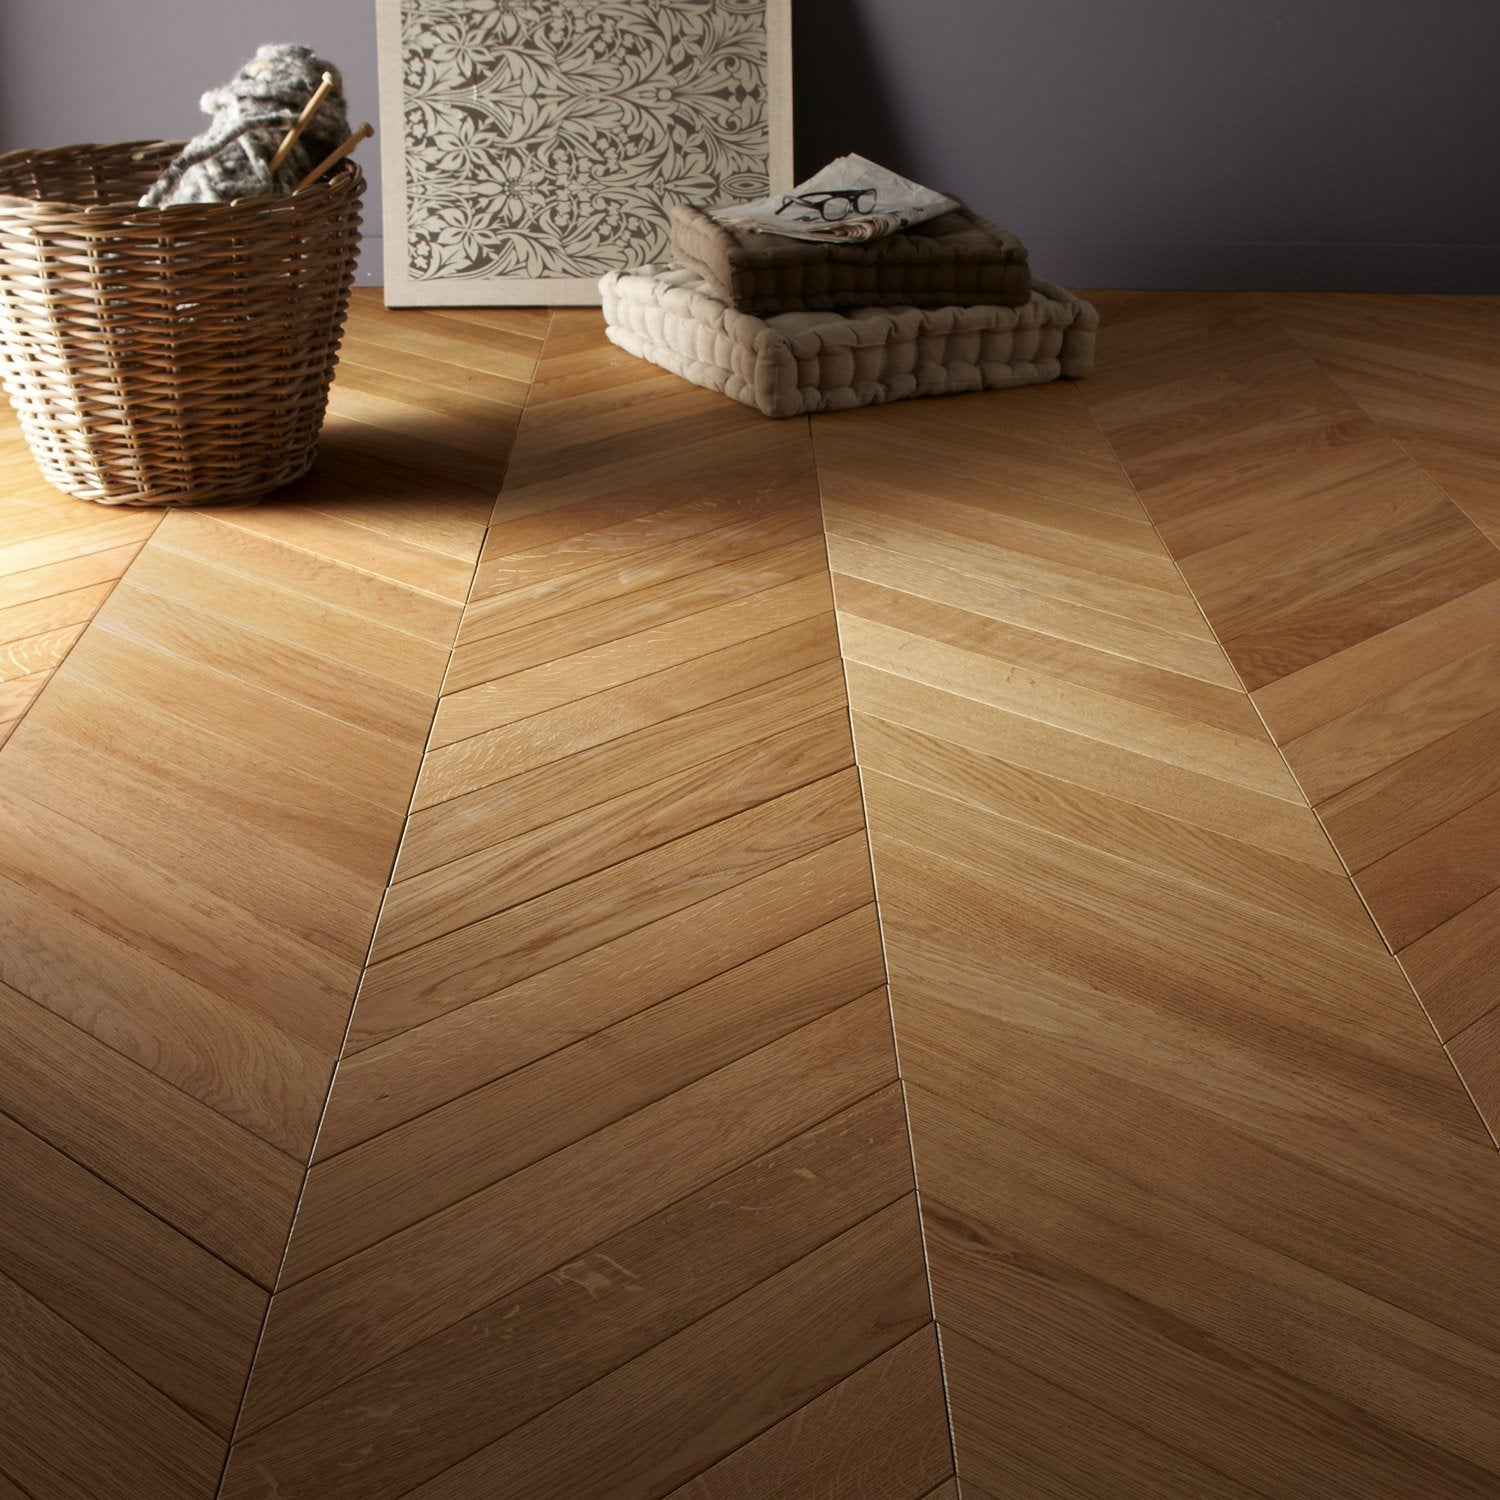 Parquet Point De Hongrie Leroy Merlin